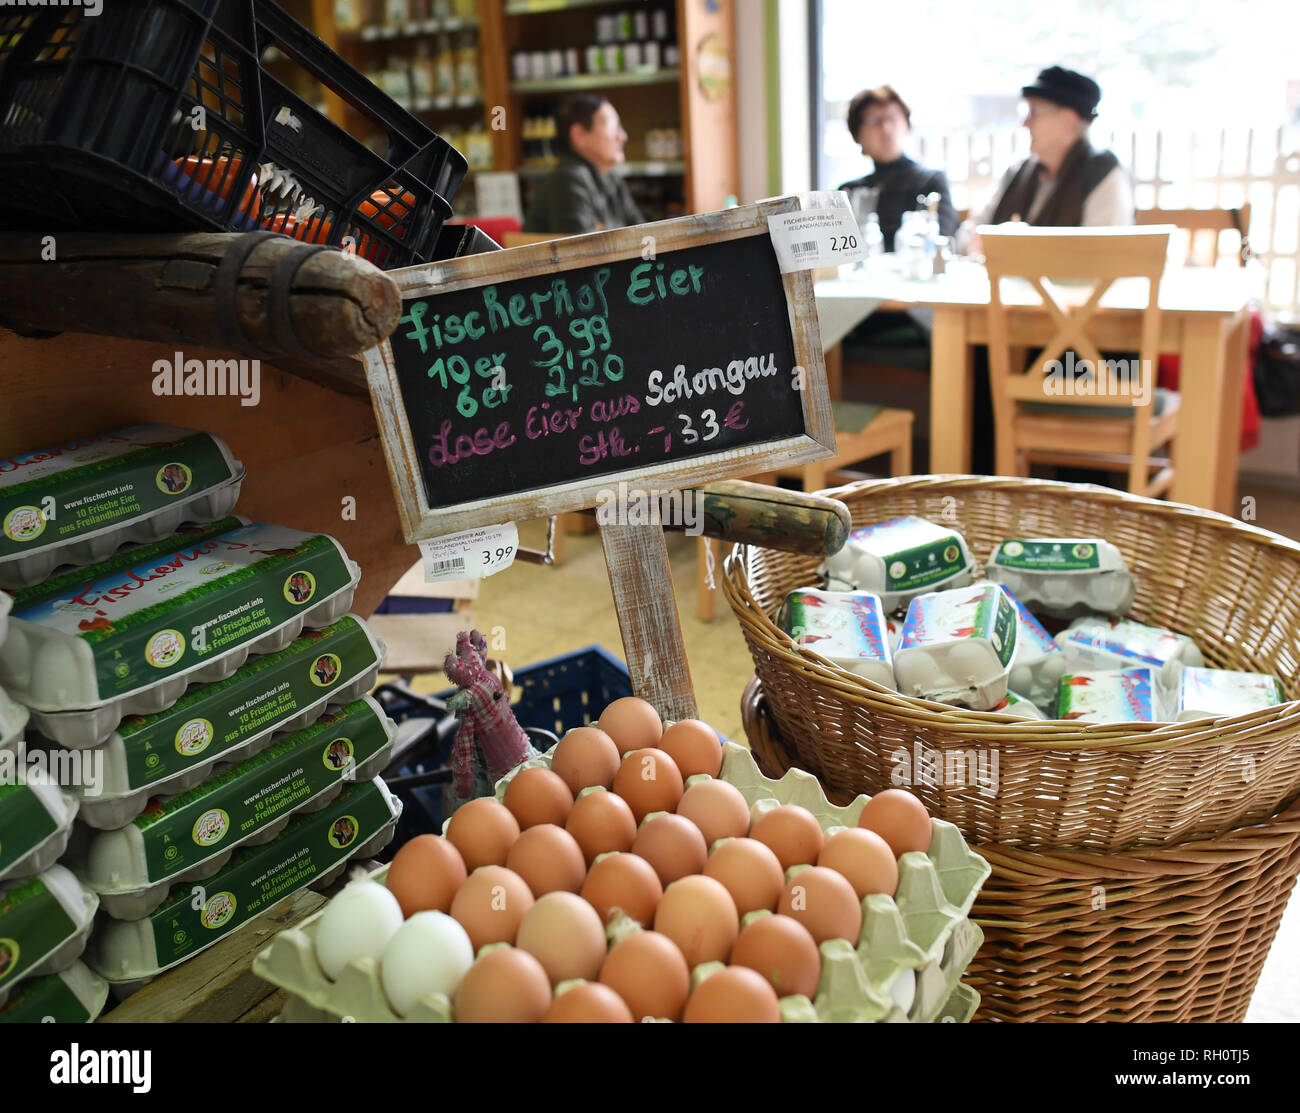 Farchant, Germany. 30th Jan, 2019. Loose eggs from the region can be bought in the village shop in Farchant. The Dorfladen has received the 'Dorfladen des Jahres' award from a trade association at the Green Week in Berlin. Credit: Angelika Warmuth/dpa/Alamy Live News - Stock Image